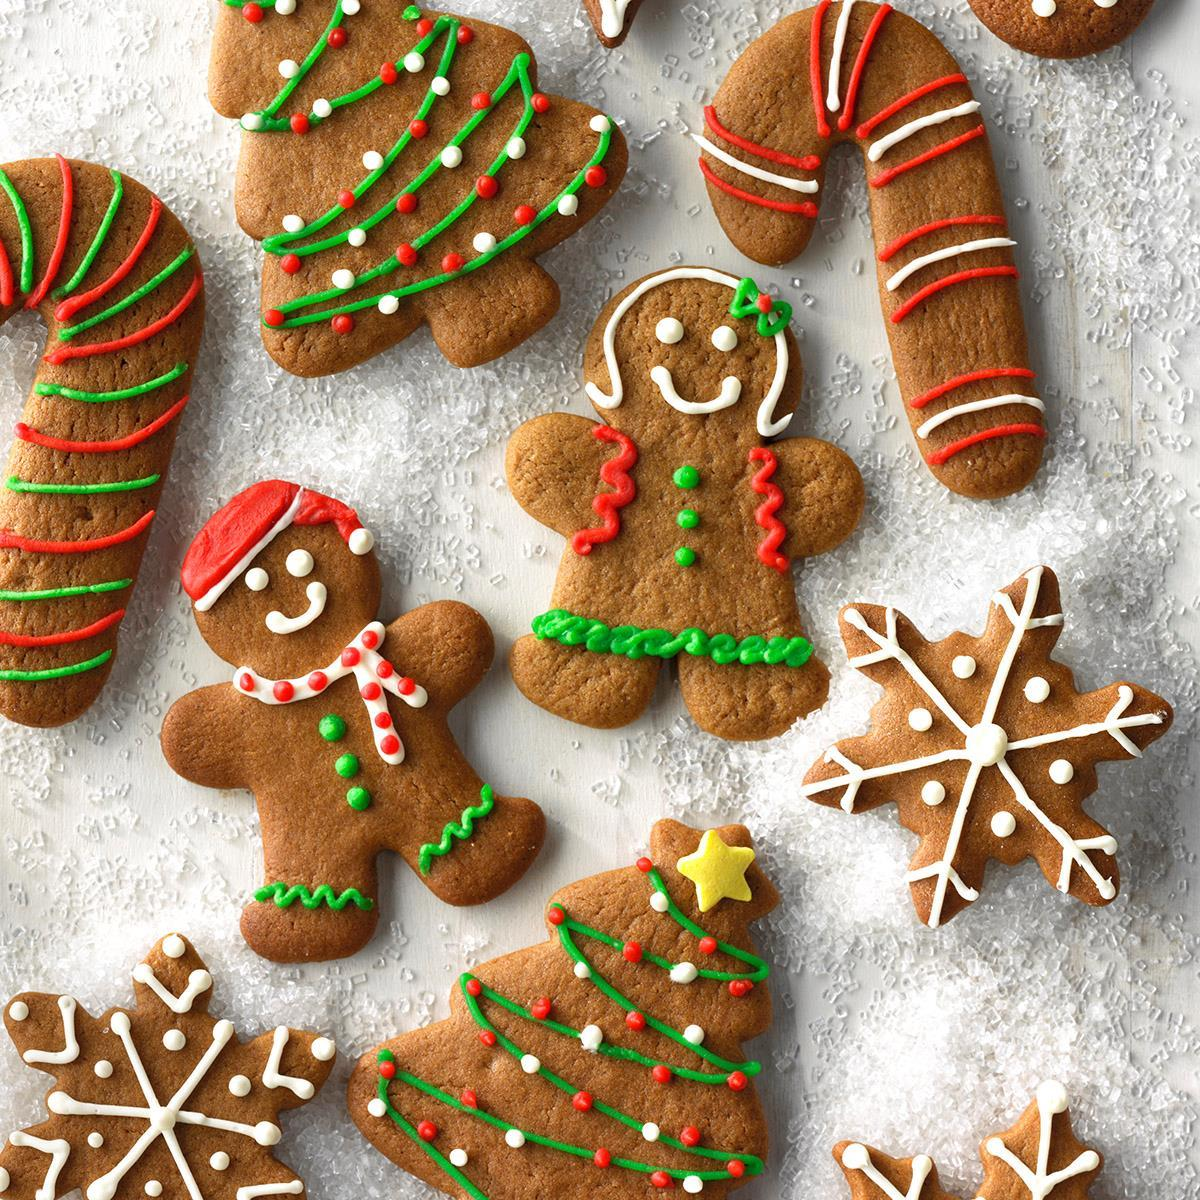 Woodbury House Care Home, Berkshire-We hope you enjoy our gingerbread recipe